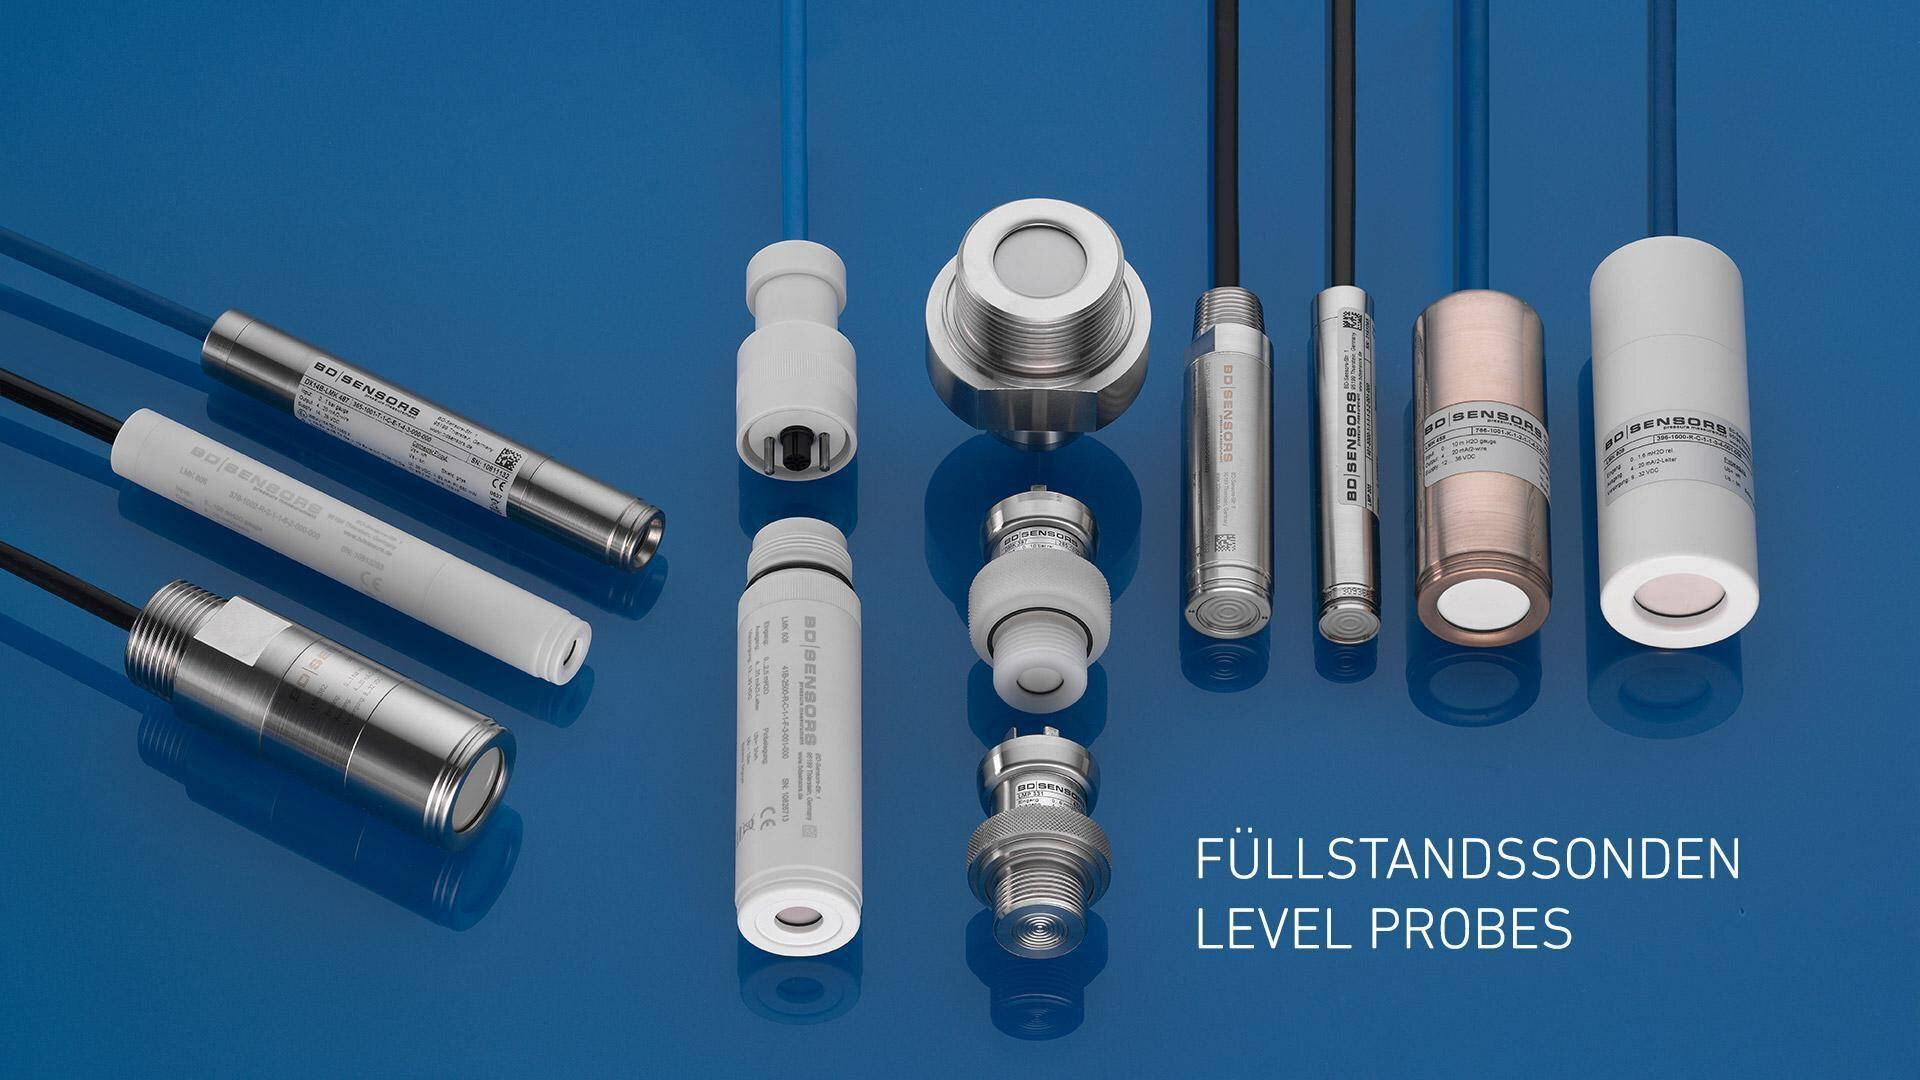 Gallery image 0 - Product selection Level probes / Submersible probes